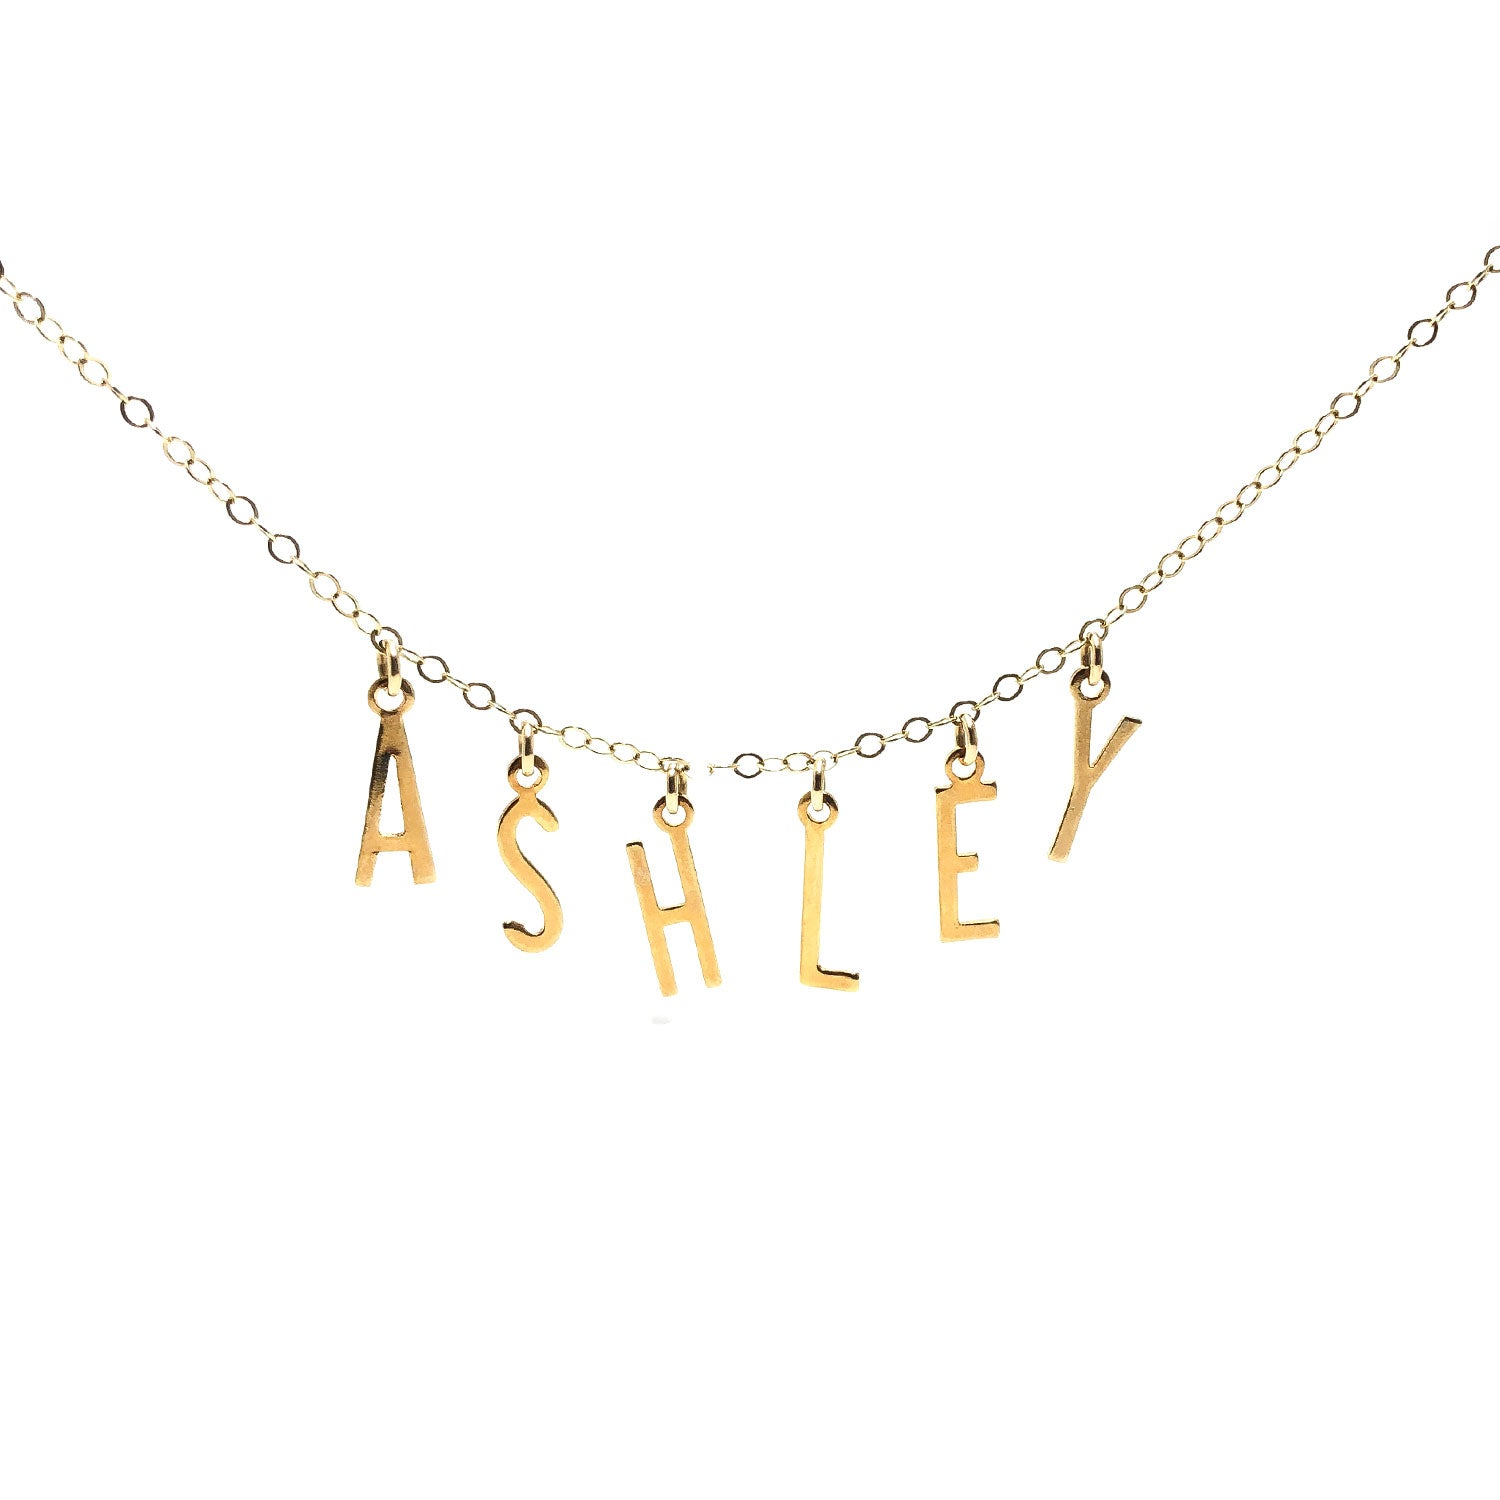 Moon and Lola - Belize Necklace on apex link chain with the name ASHLEY spelled out